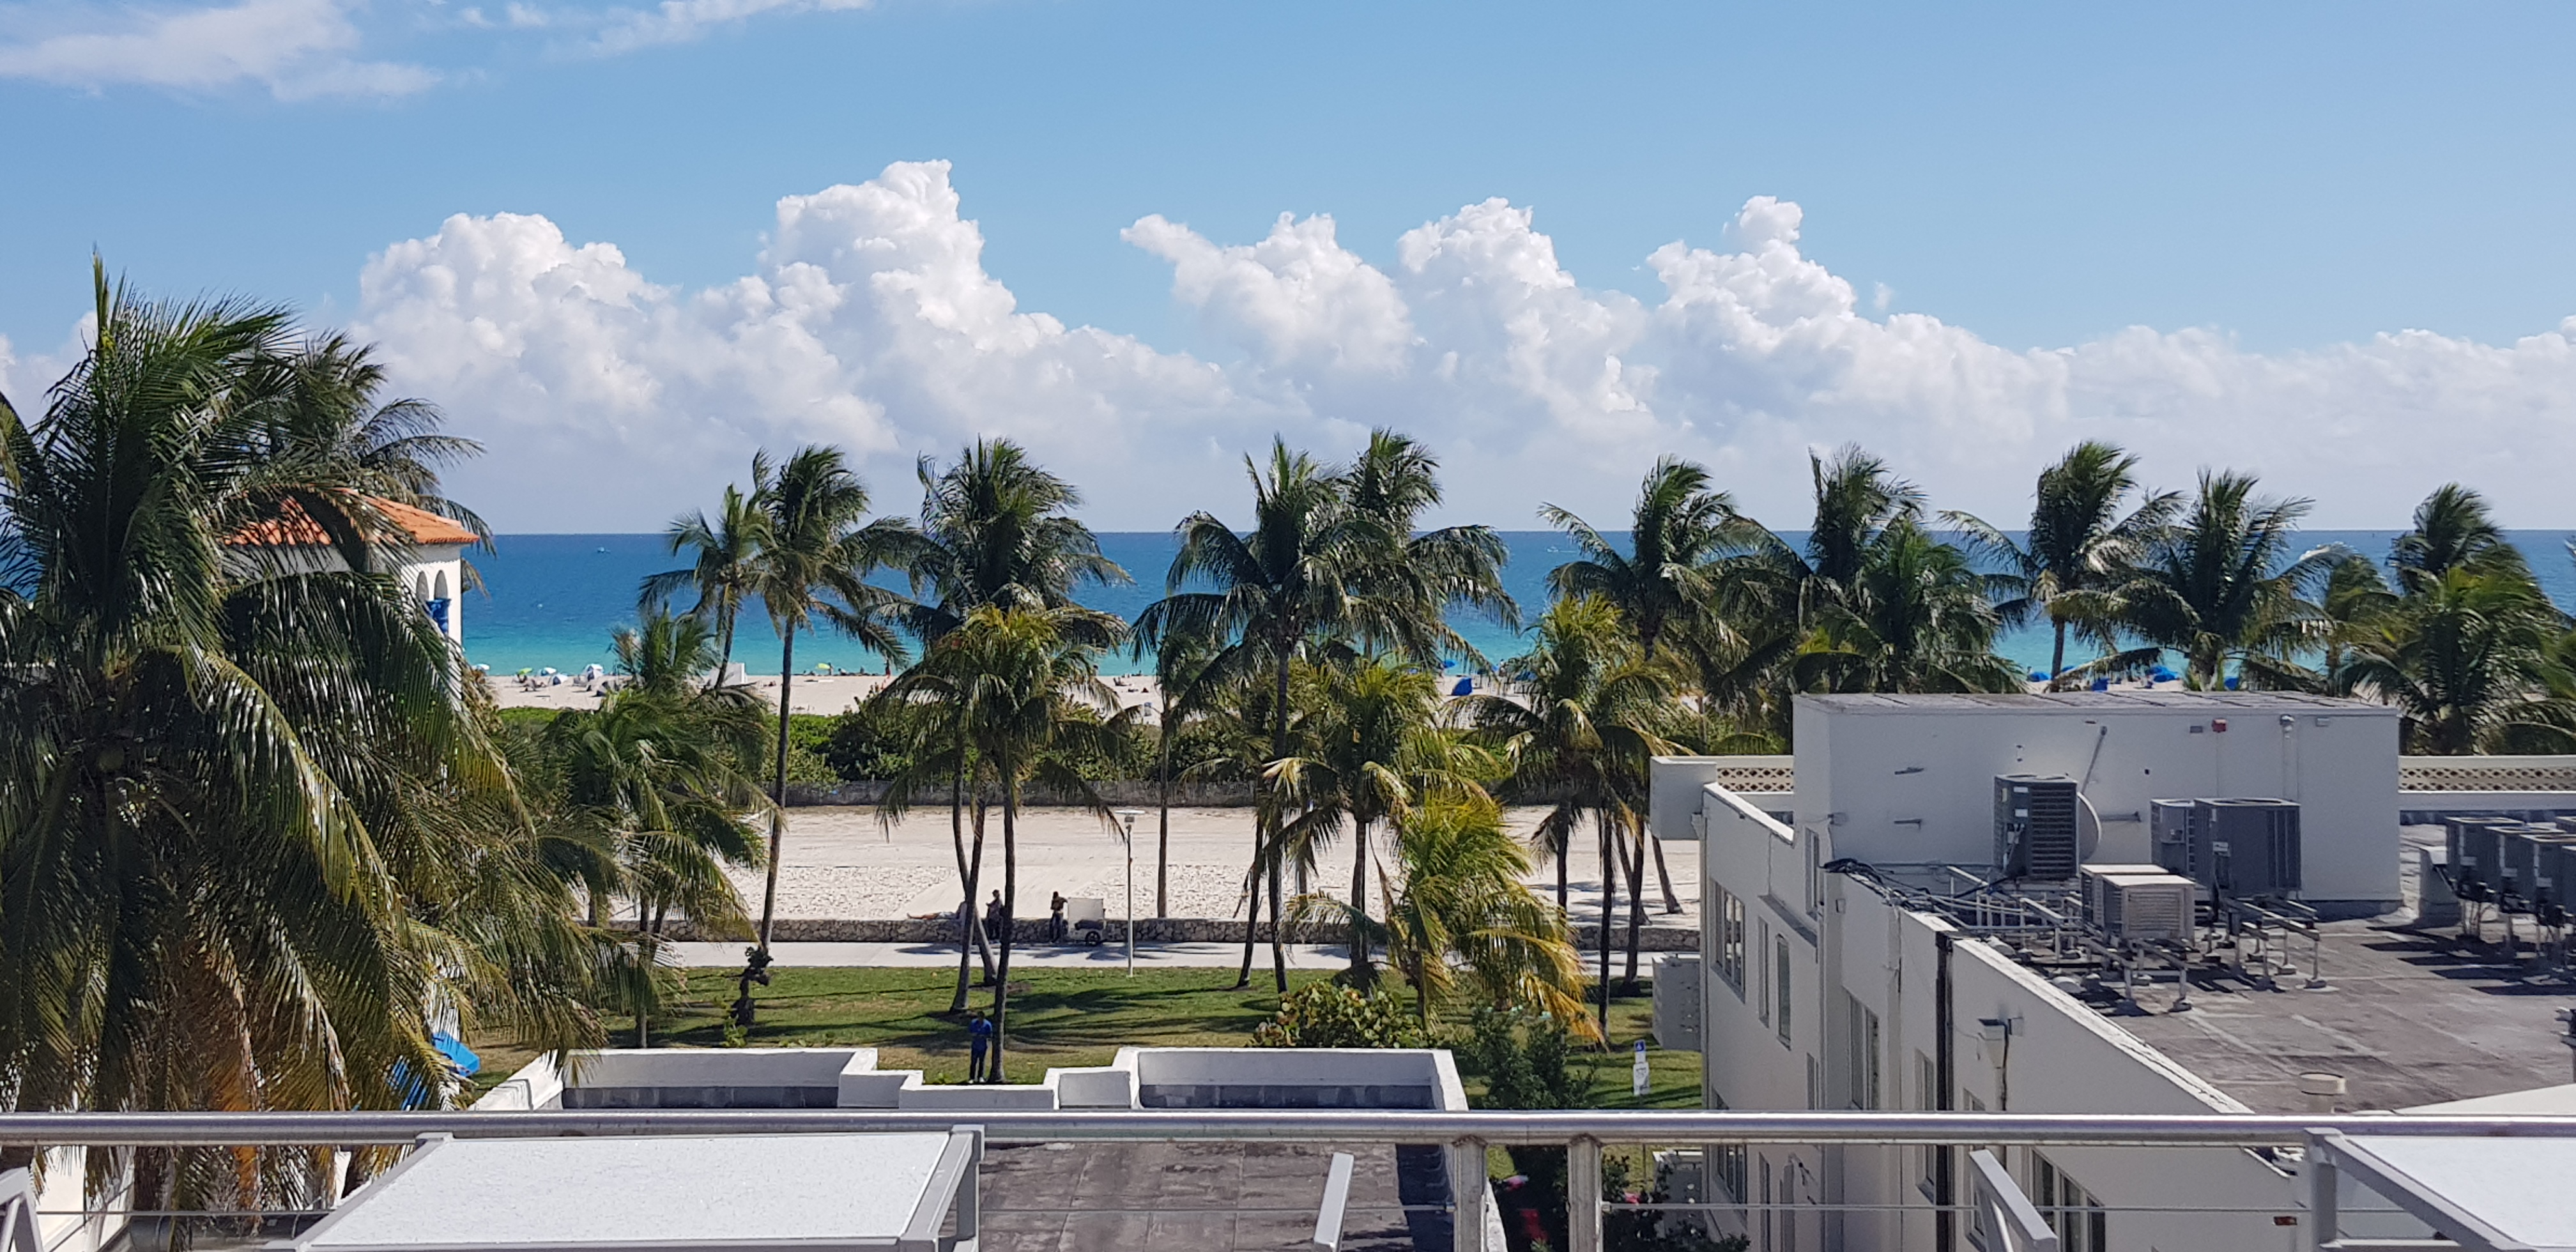 Hotel of south beach miami